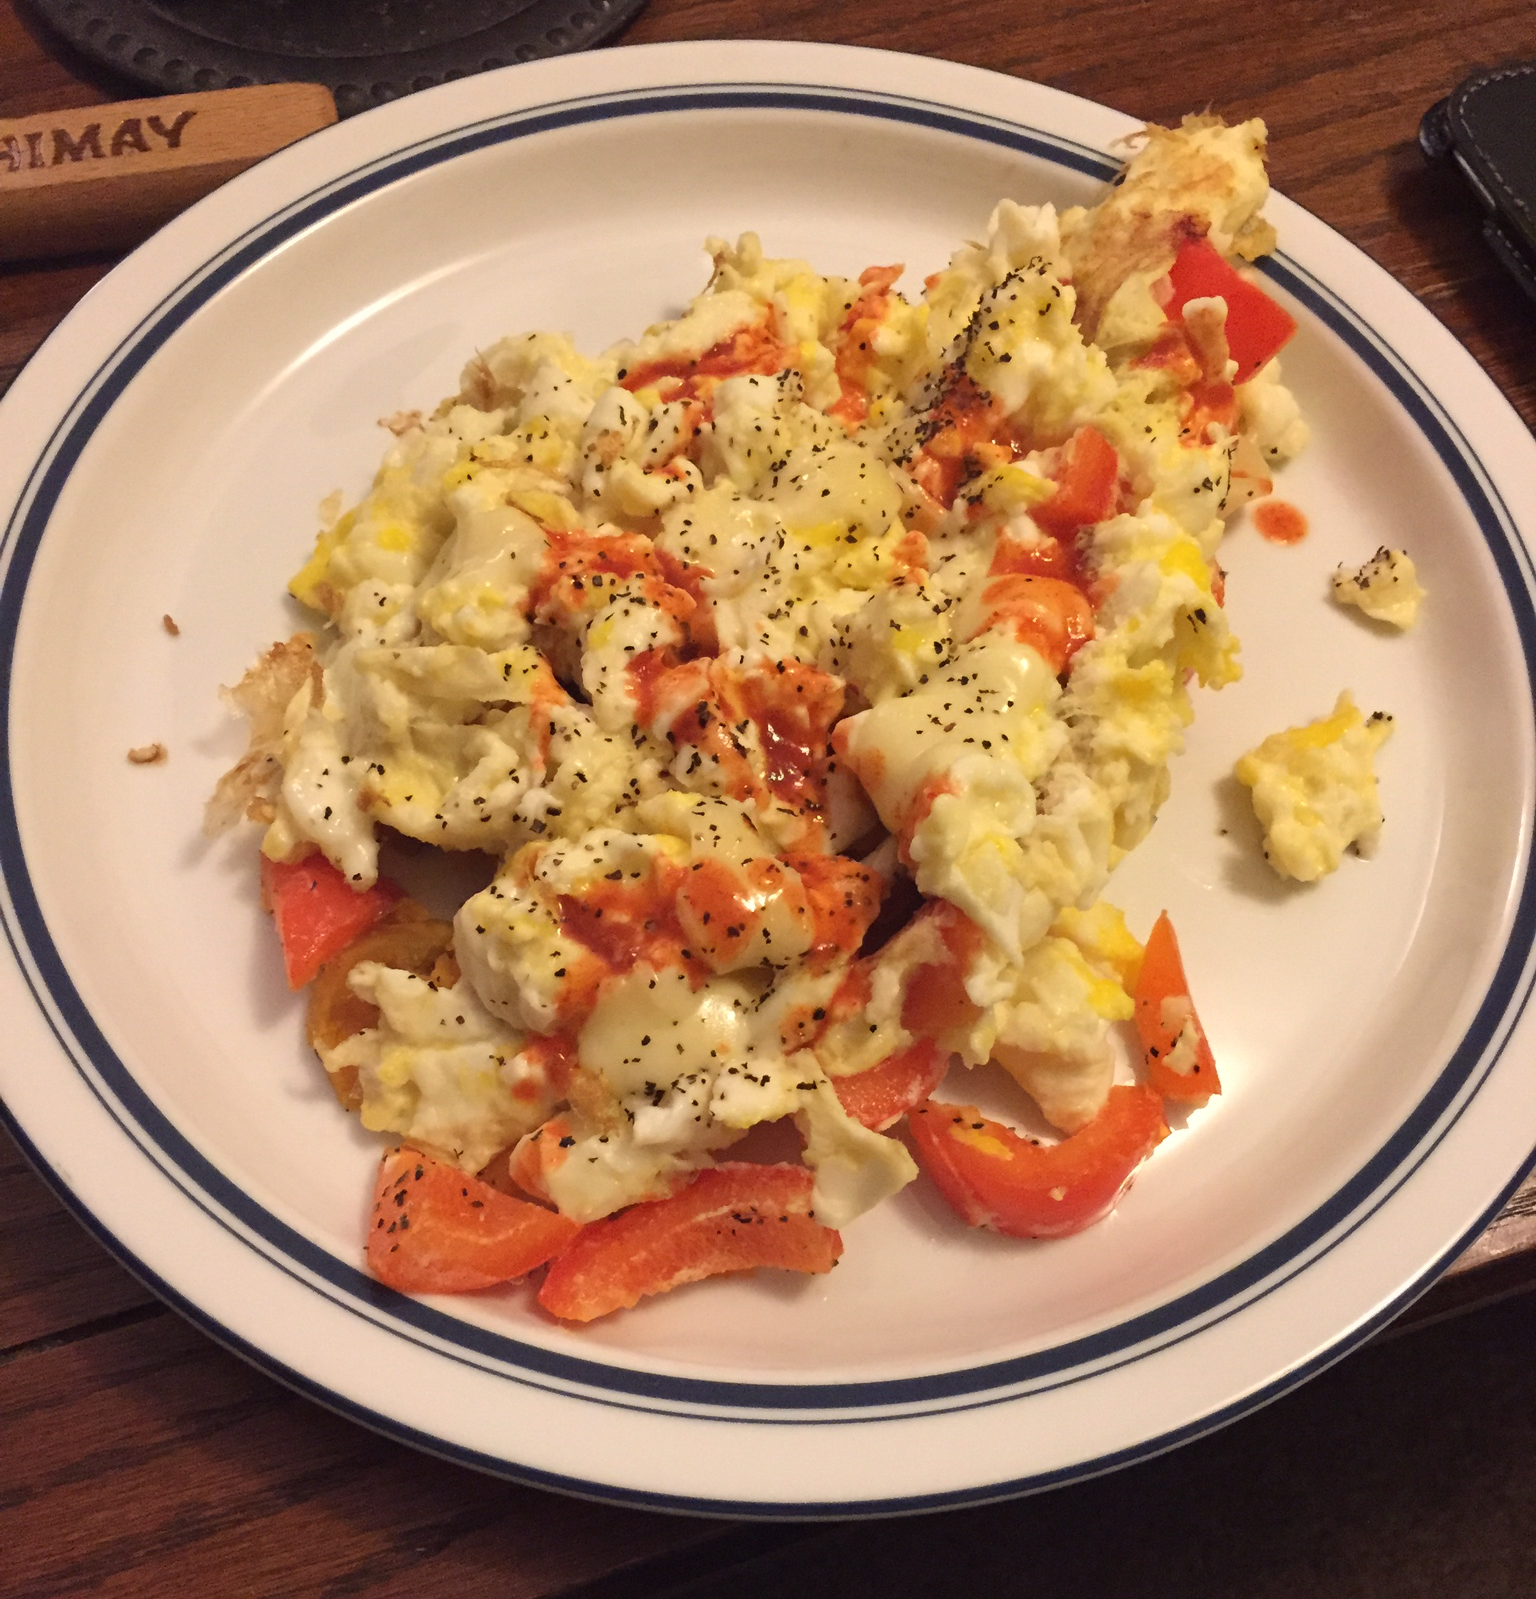 Here is the finished product - whole eggs, egg whites, sliced red pepper, black pepper, 1 slice of deli provolone and some hot sauce!